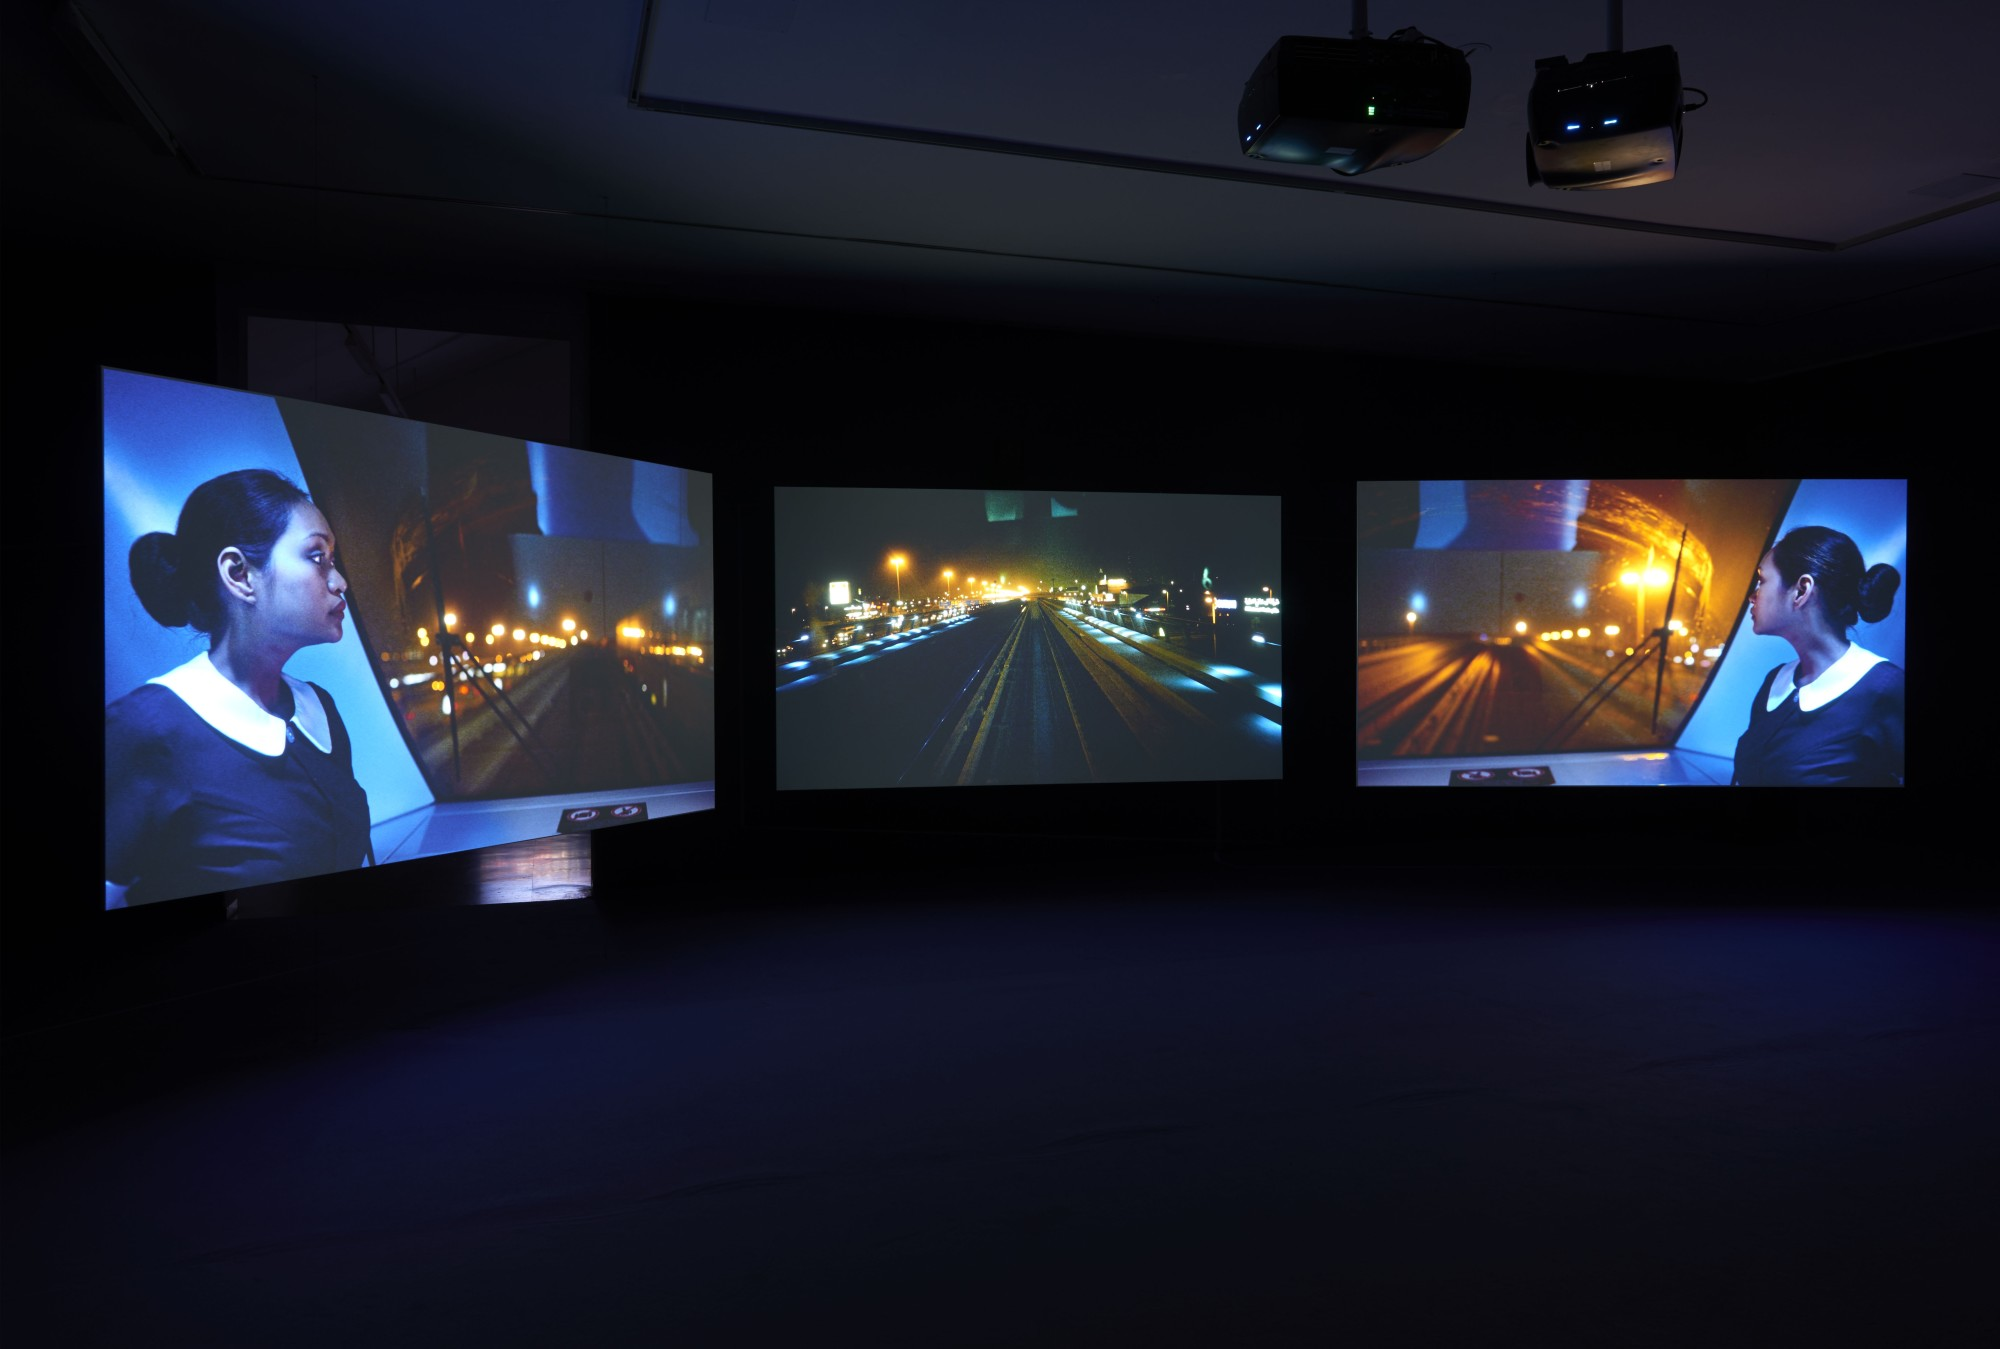 Playtime. Galería Helga de Alvear, Madrid, 2015  Three screen high definition video installation with 5.1 surround sound  64'12''